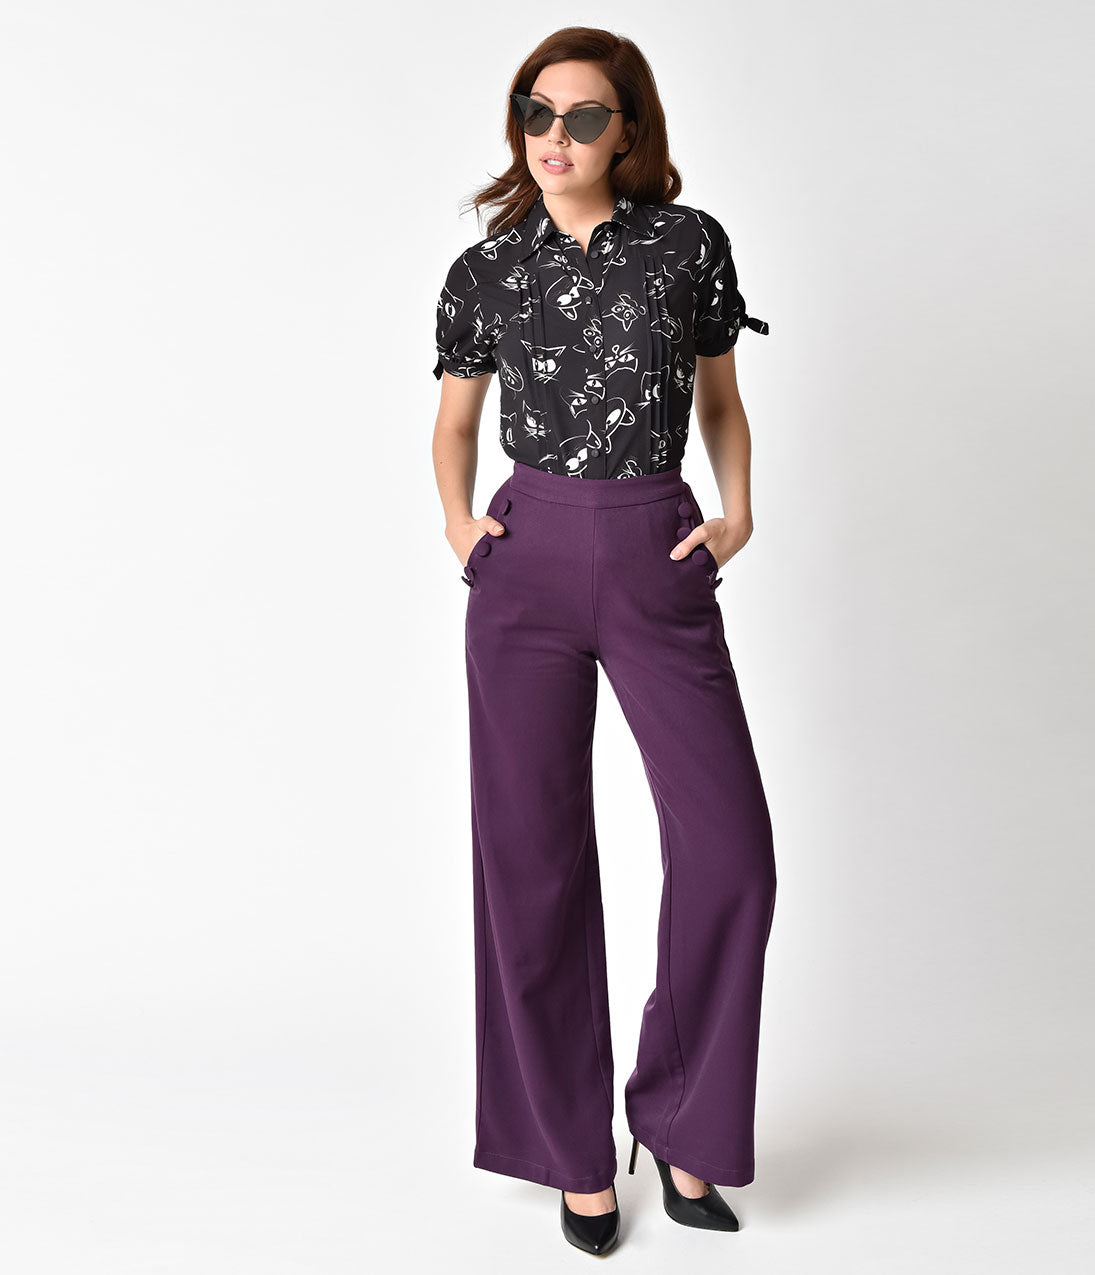 Vintage High Waisted Trousers, Sailor Pants, Jeans Voodoo Vixen 1940s Style Purple High Waist Wide Leg Stacey Pants $43.00 AT vintagedancer.com